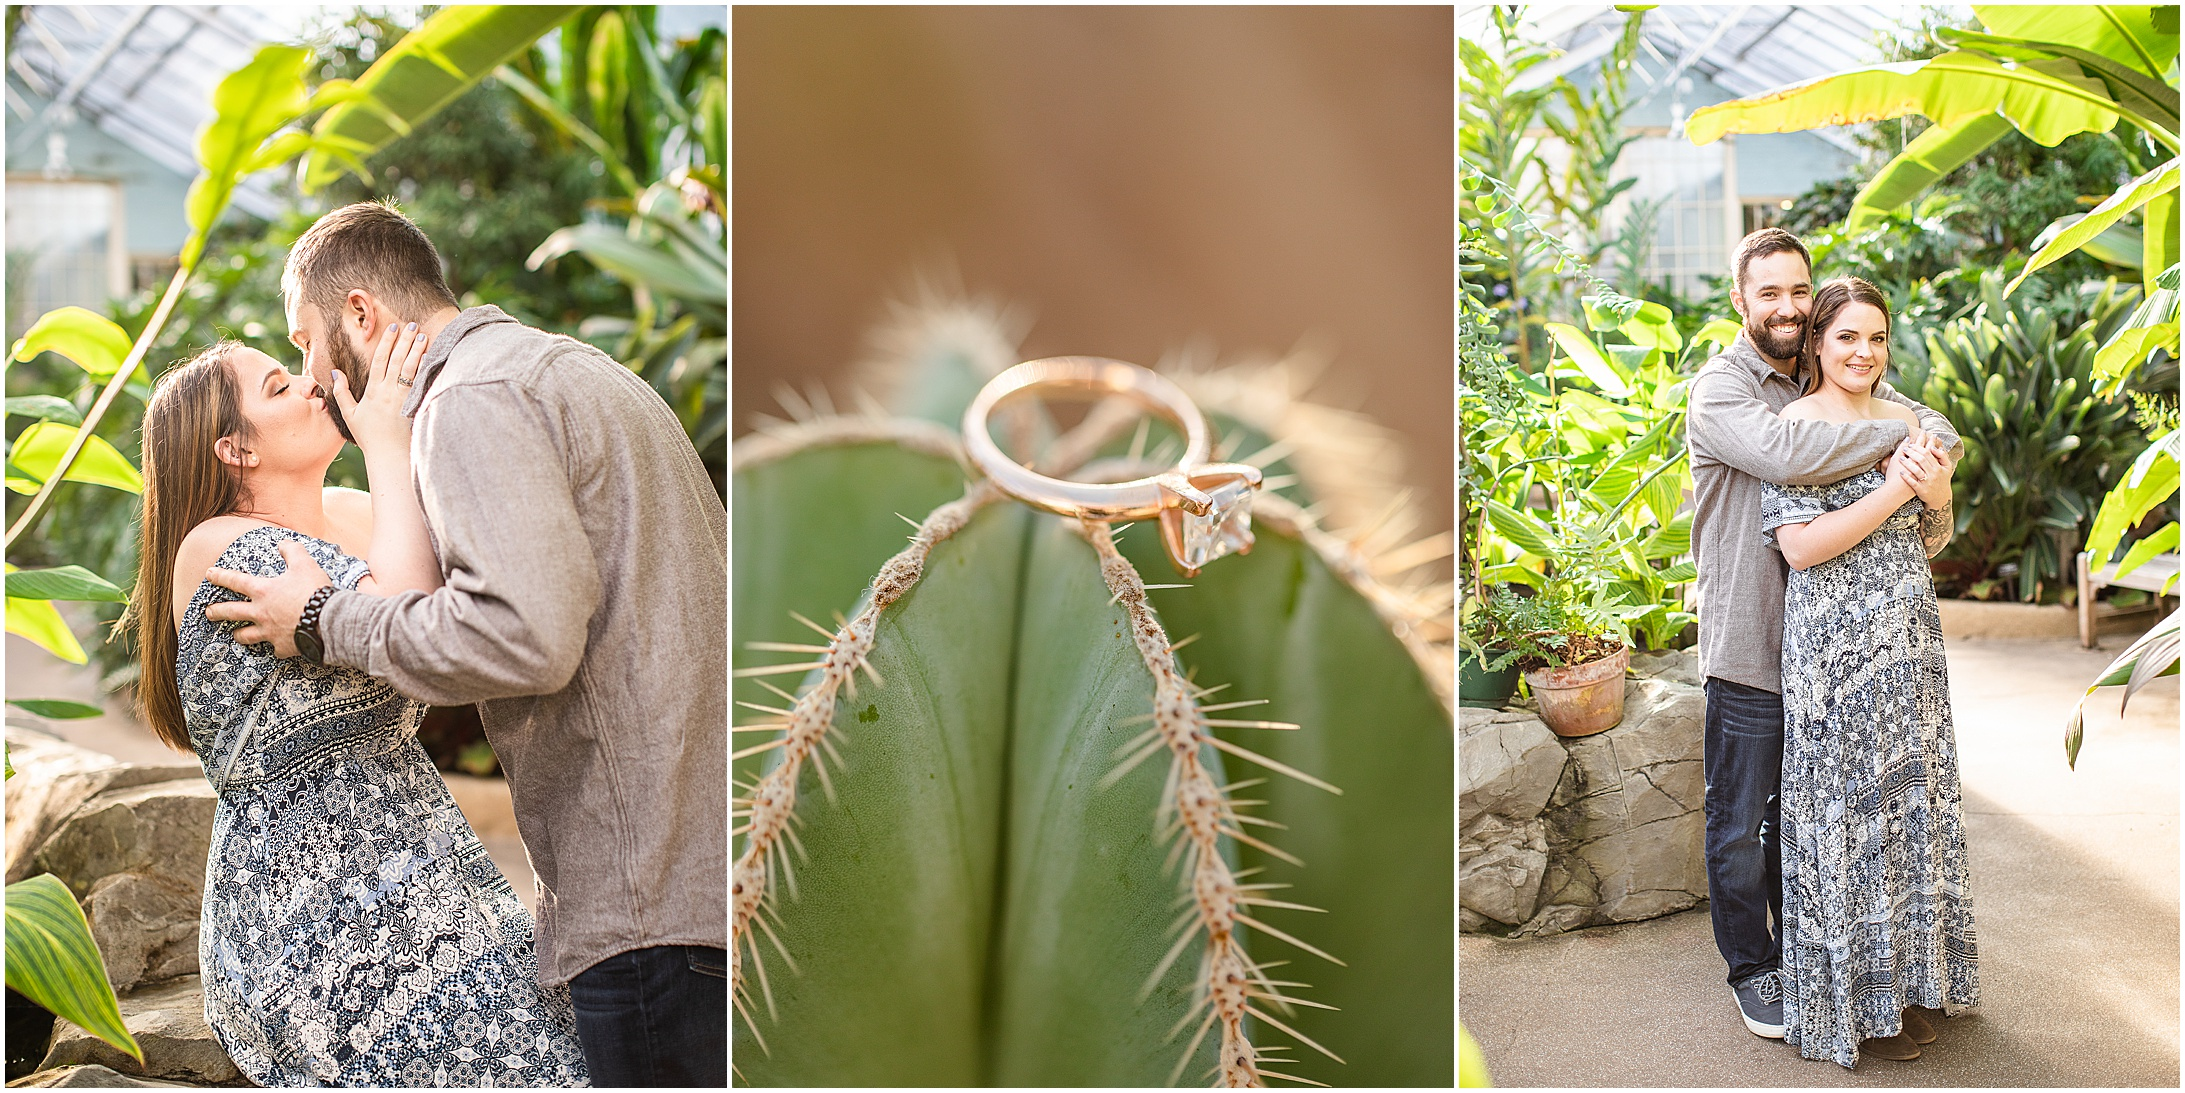 Rawlings-Conservatory-Engagement-Photos_0281.jpg